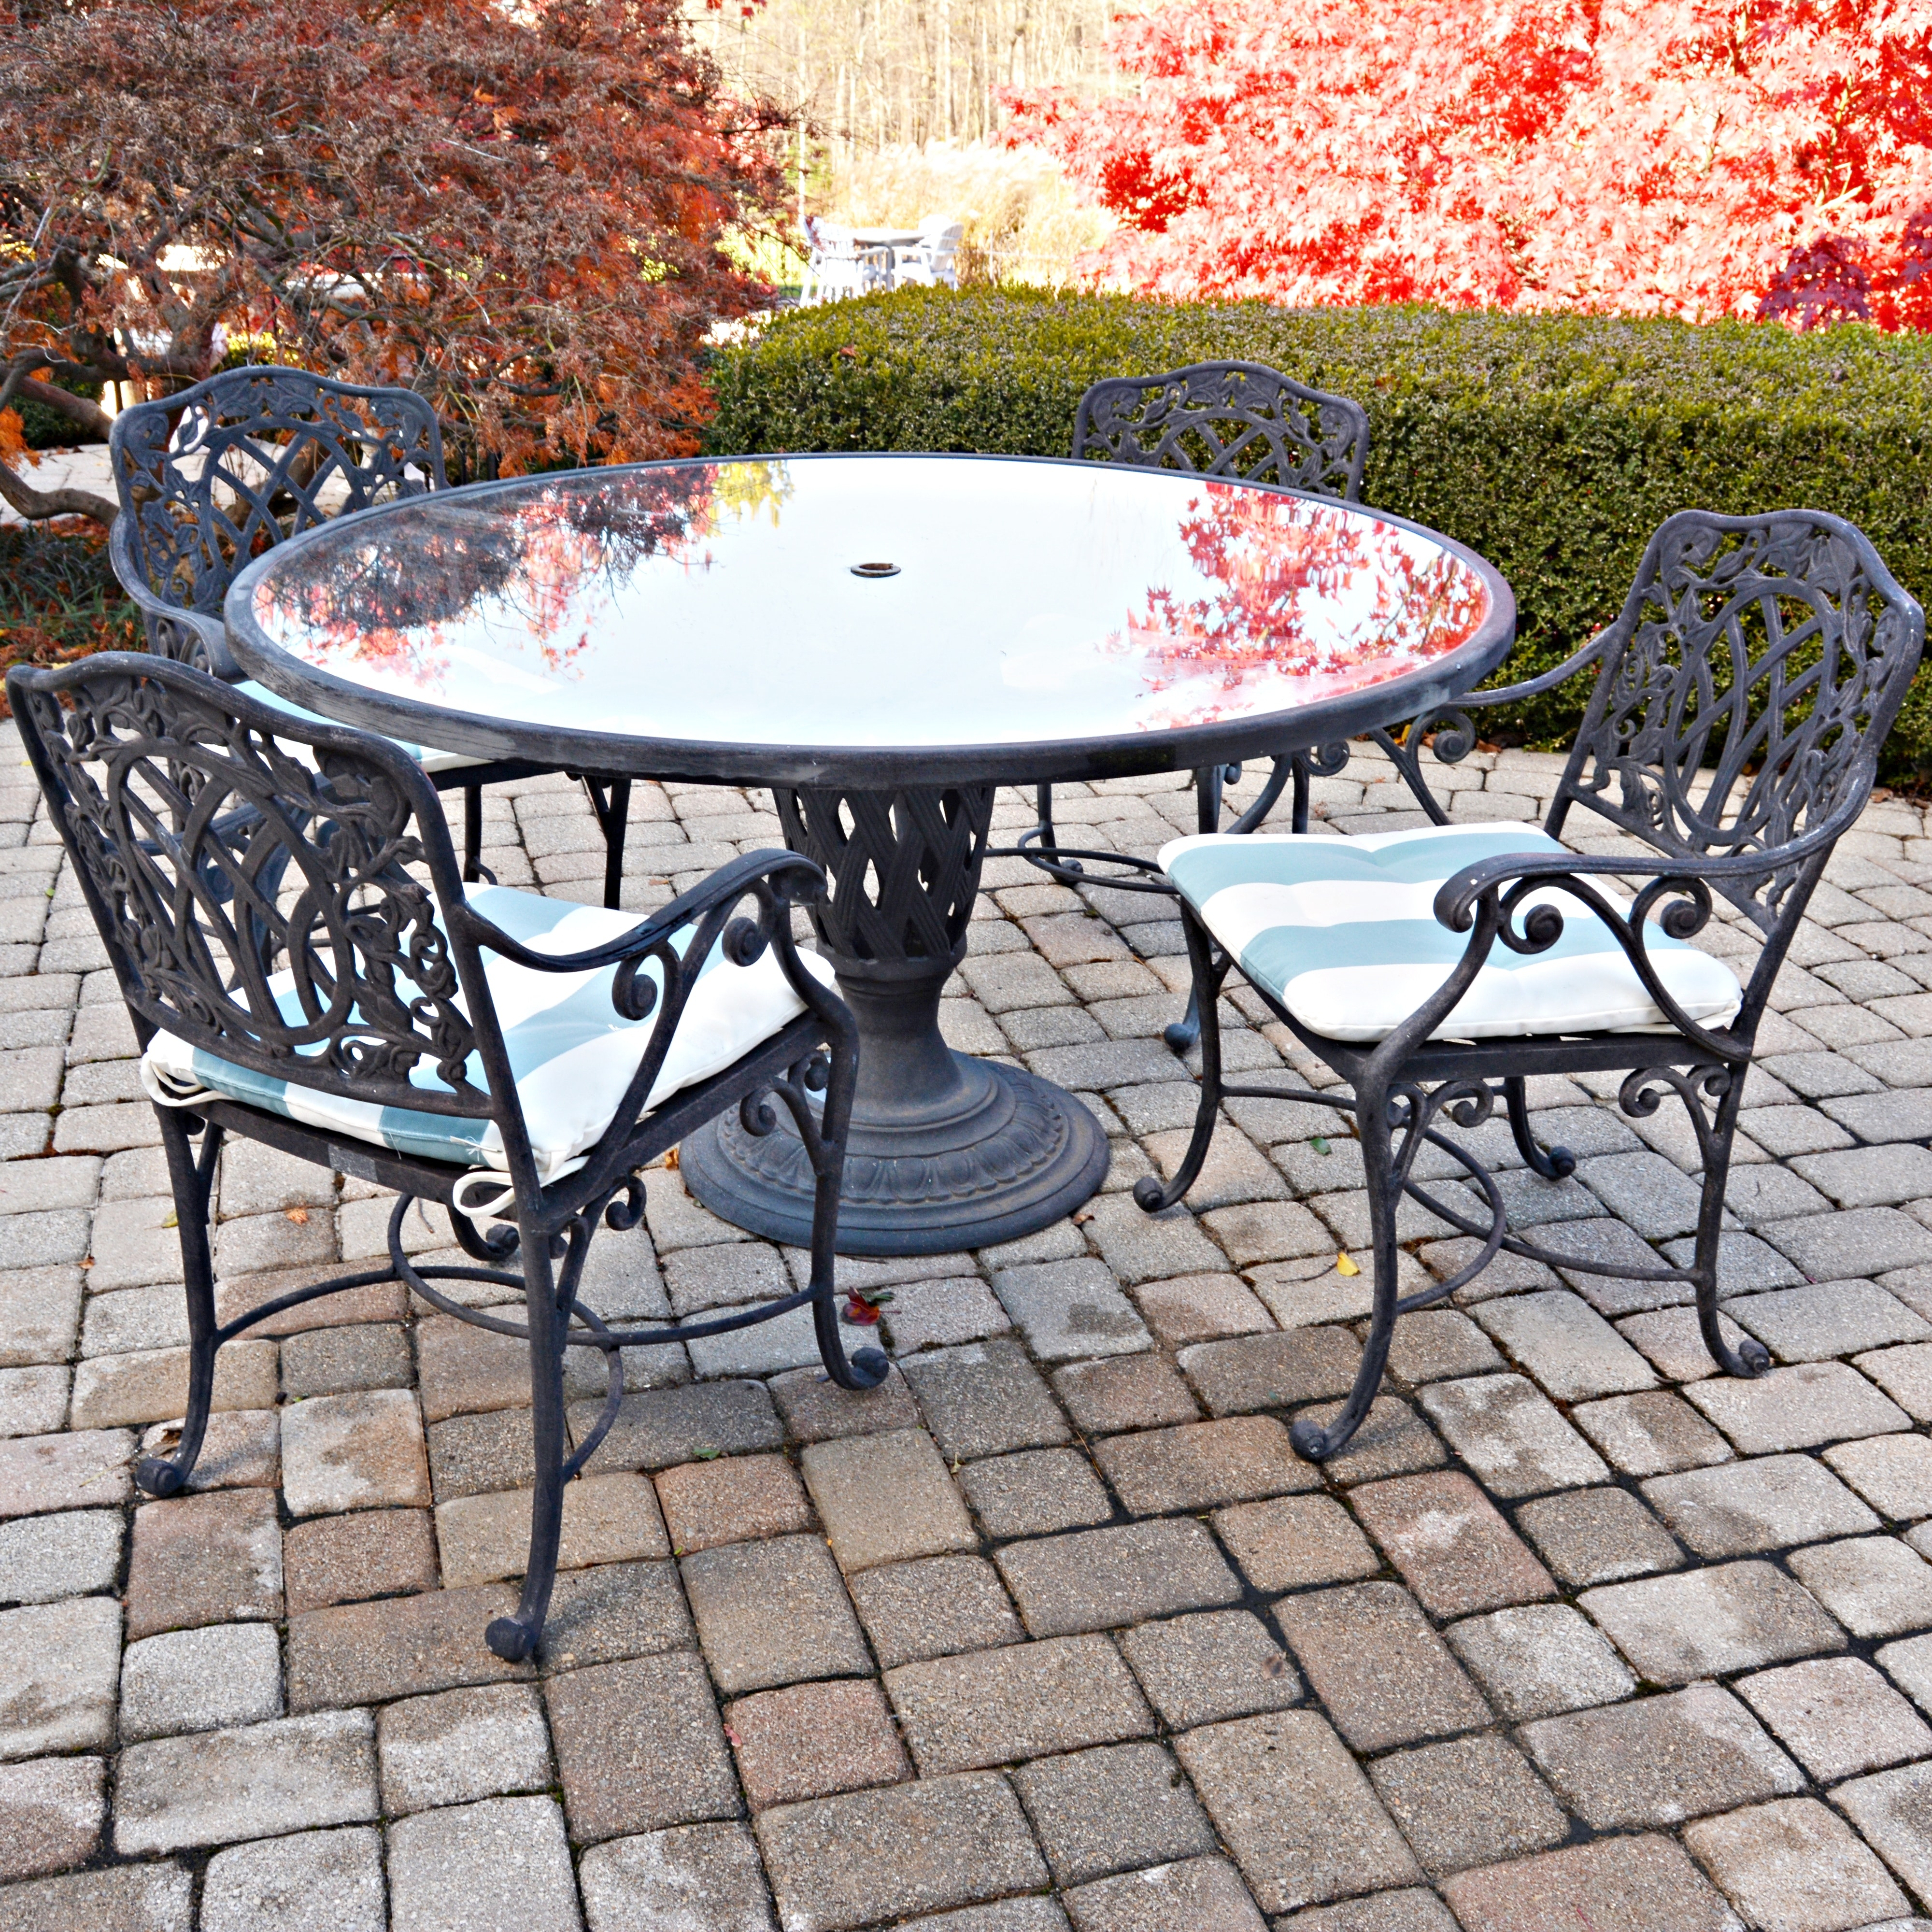 Cast Iron Patio Table, Chairs, and Umbrella